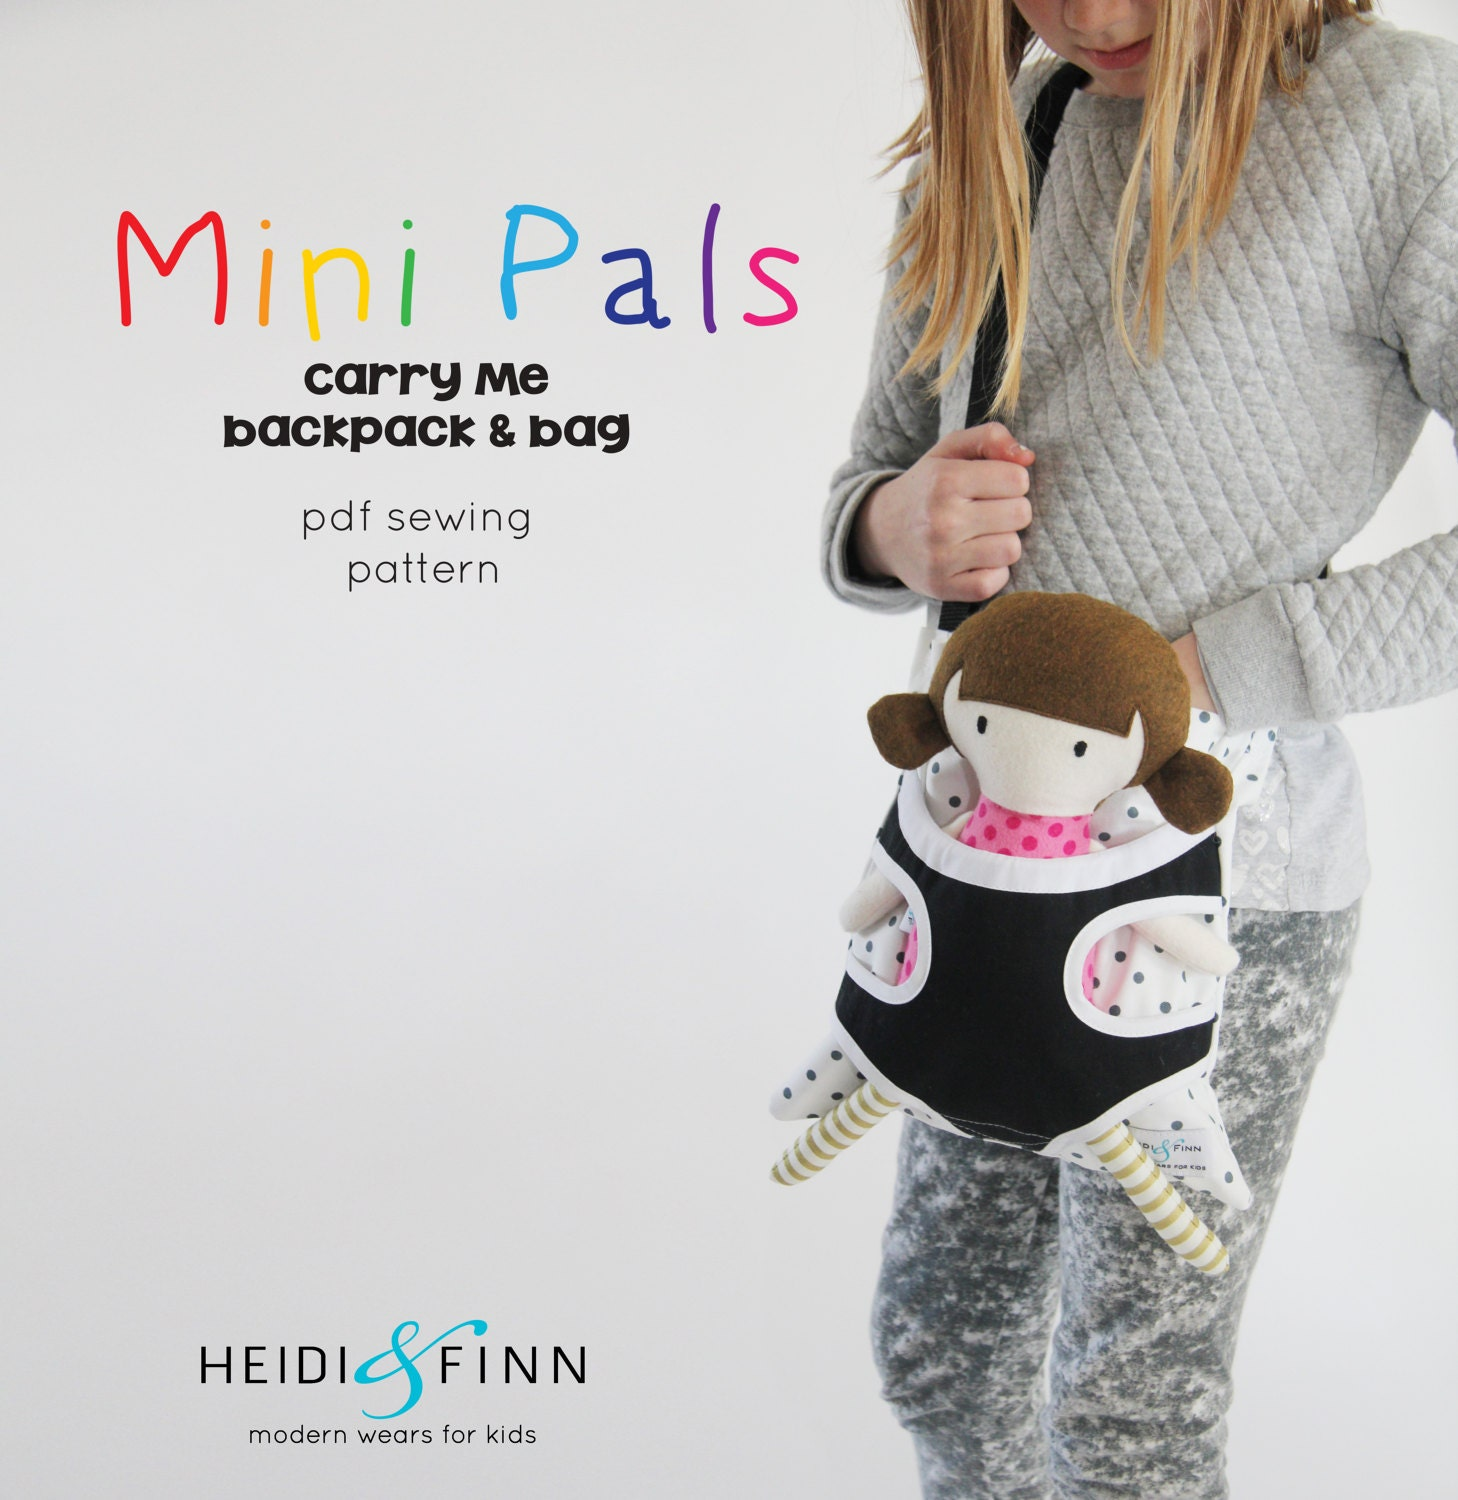 Mini pals carry me backpack messesnger bag soft rag doll sewing this is a digital file jeuxipadfo Choice Image